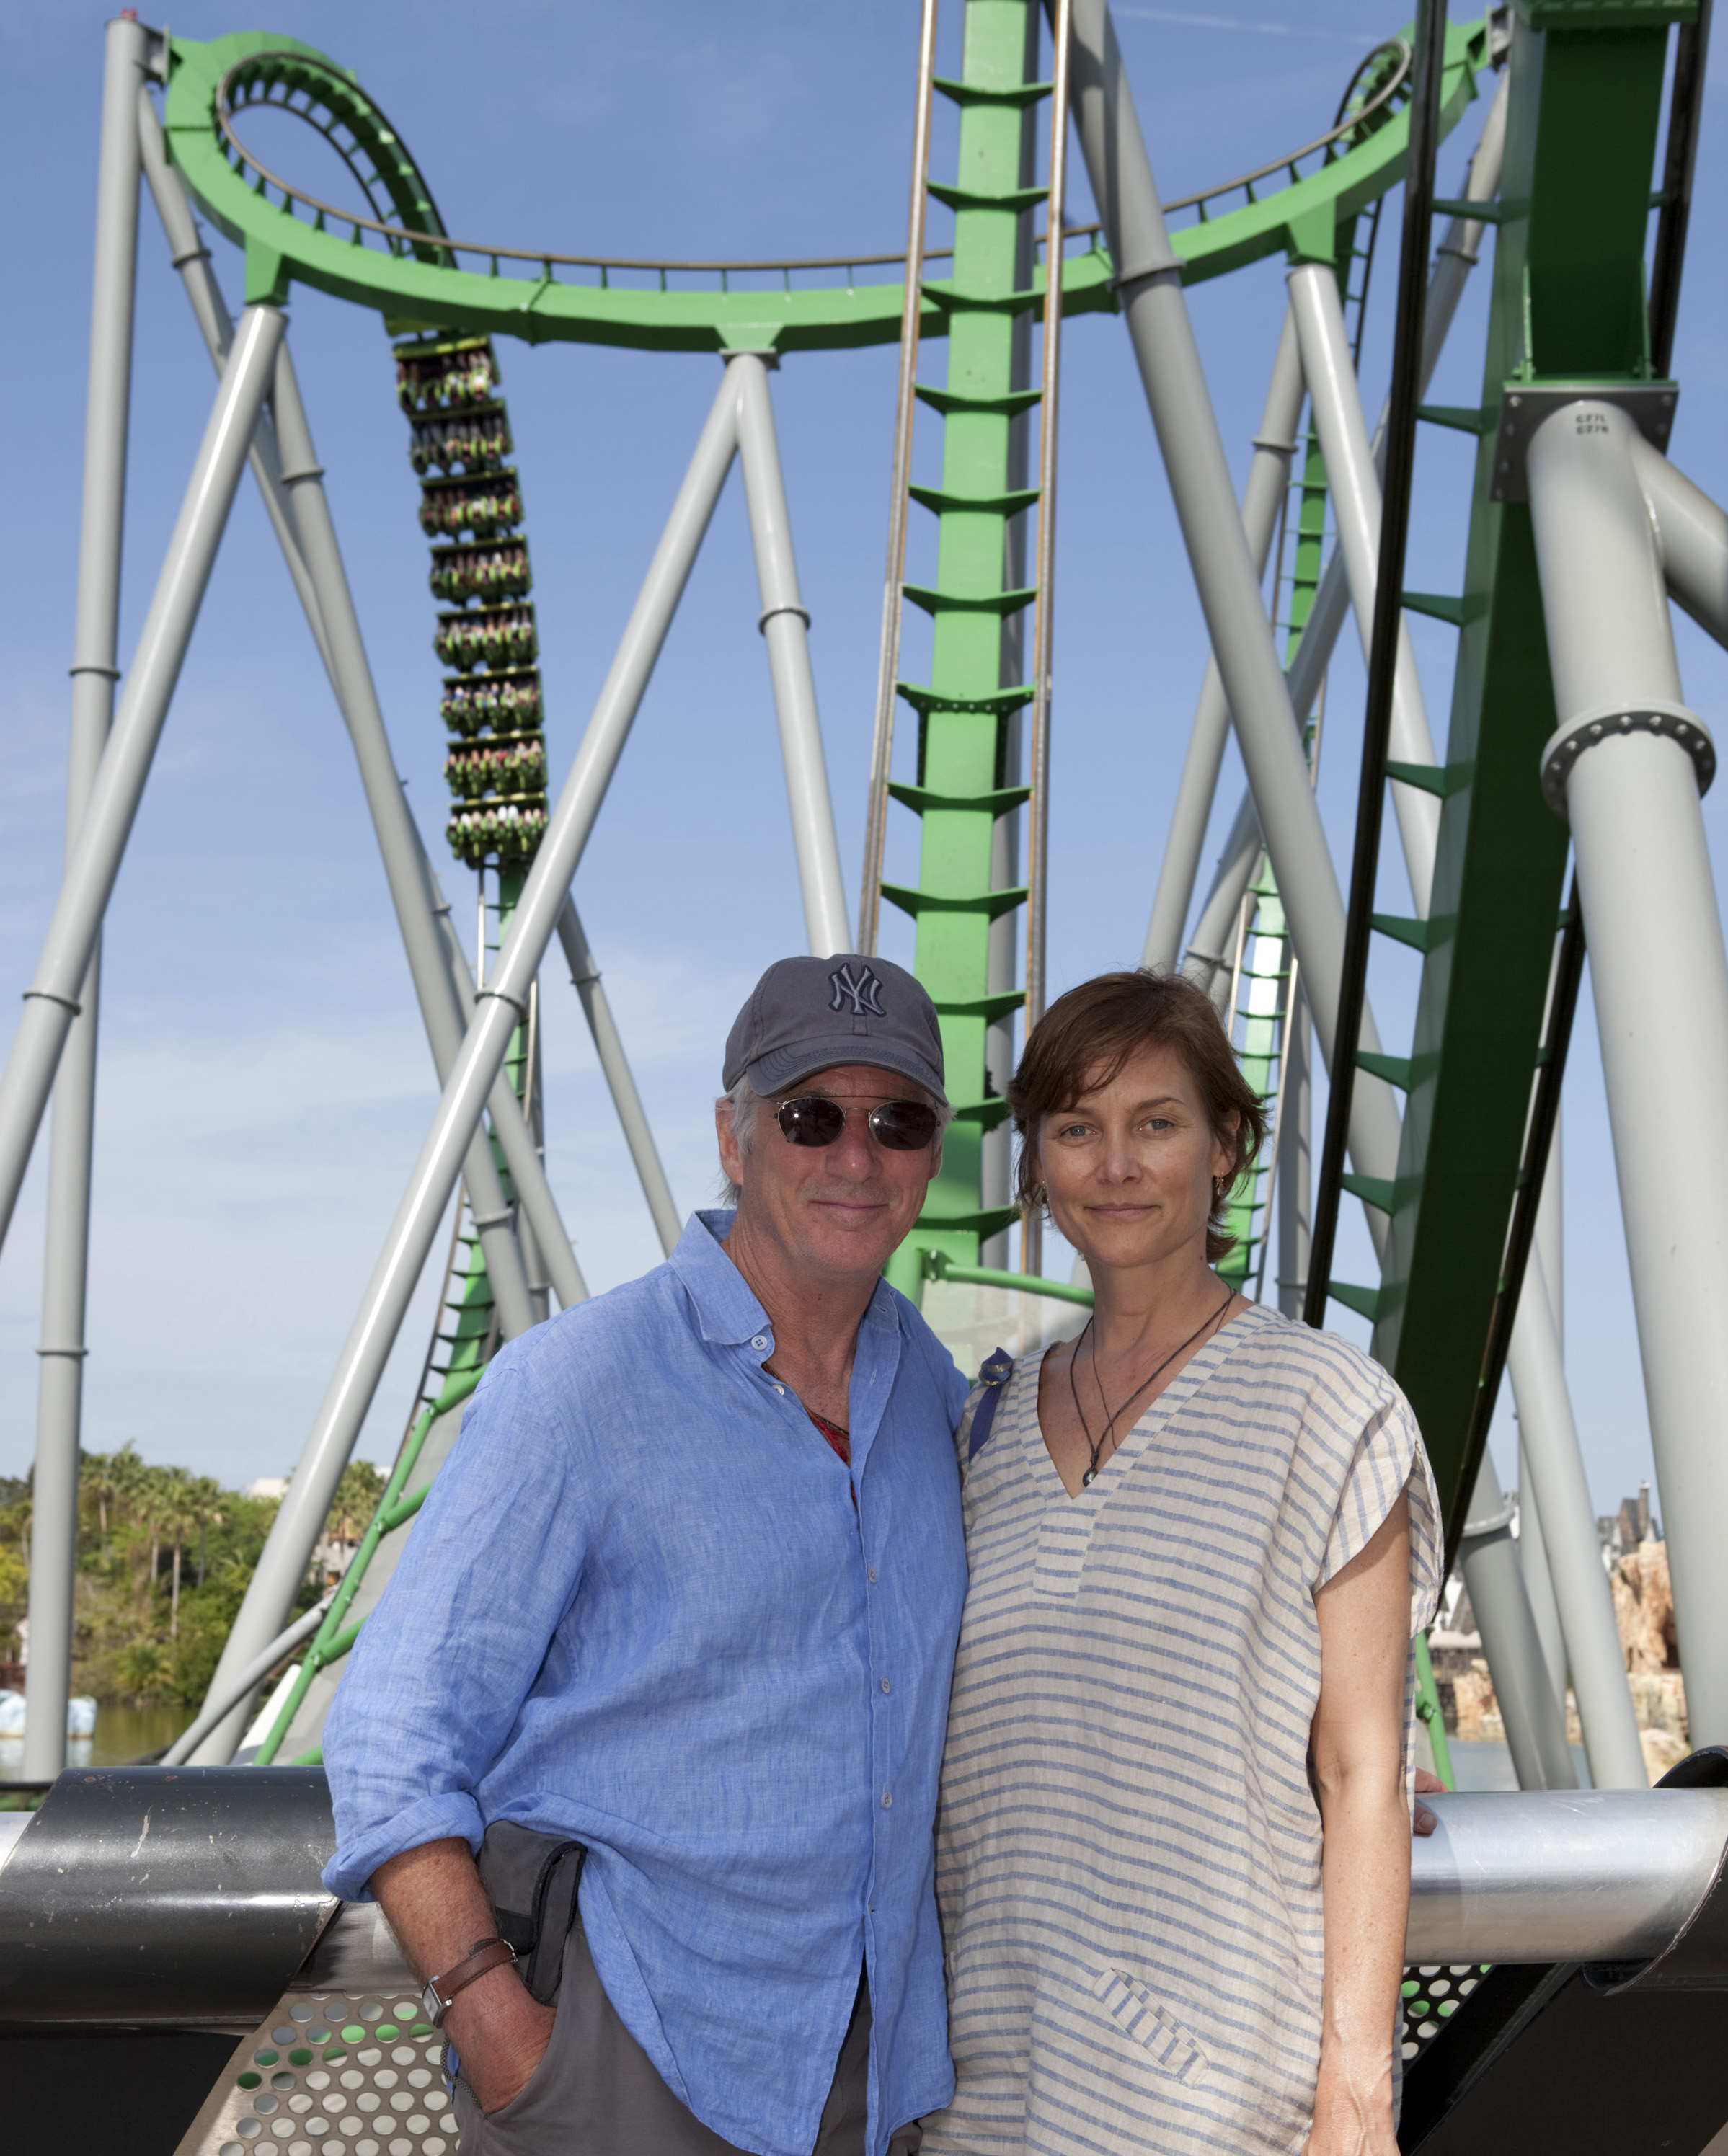 Richard Gere with his wife at Universal Orlando's The Hulk